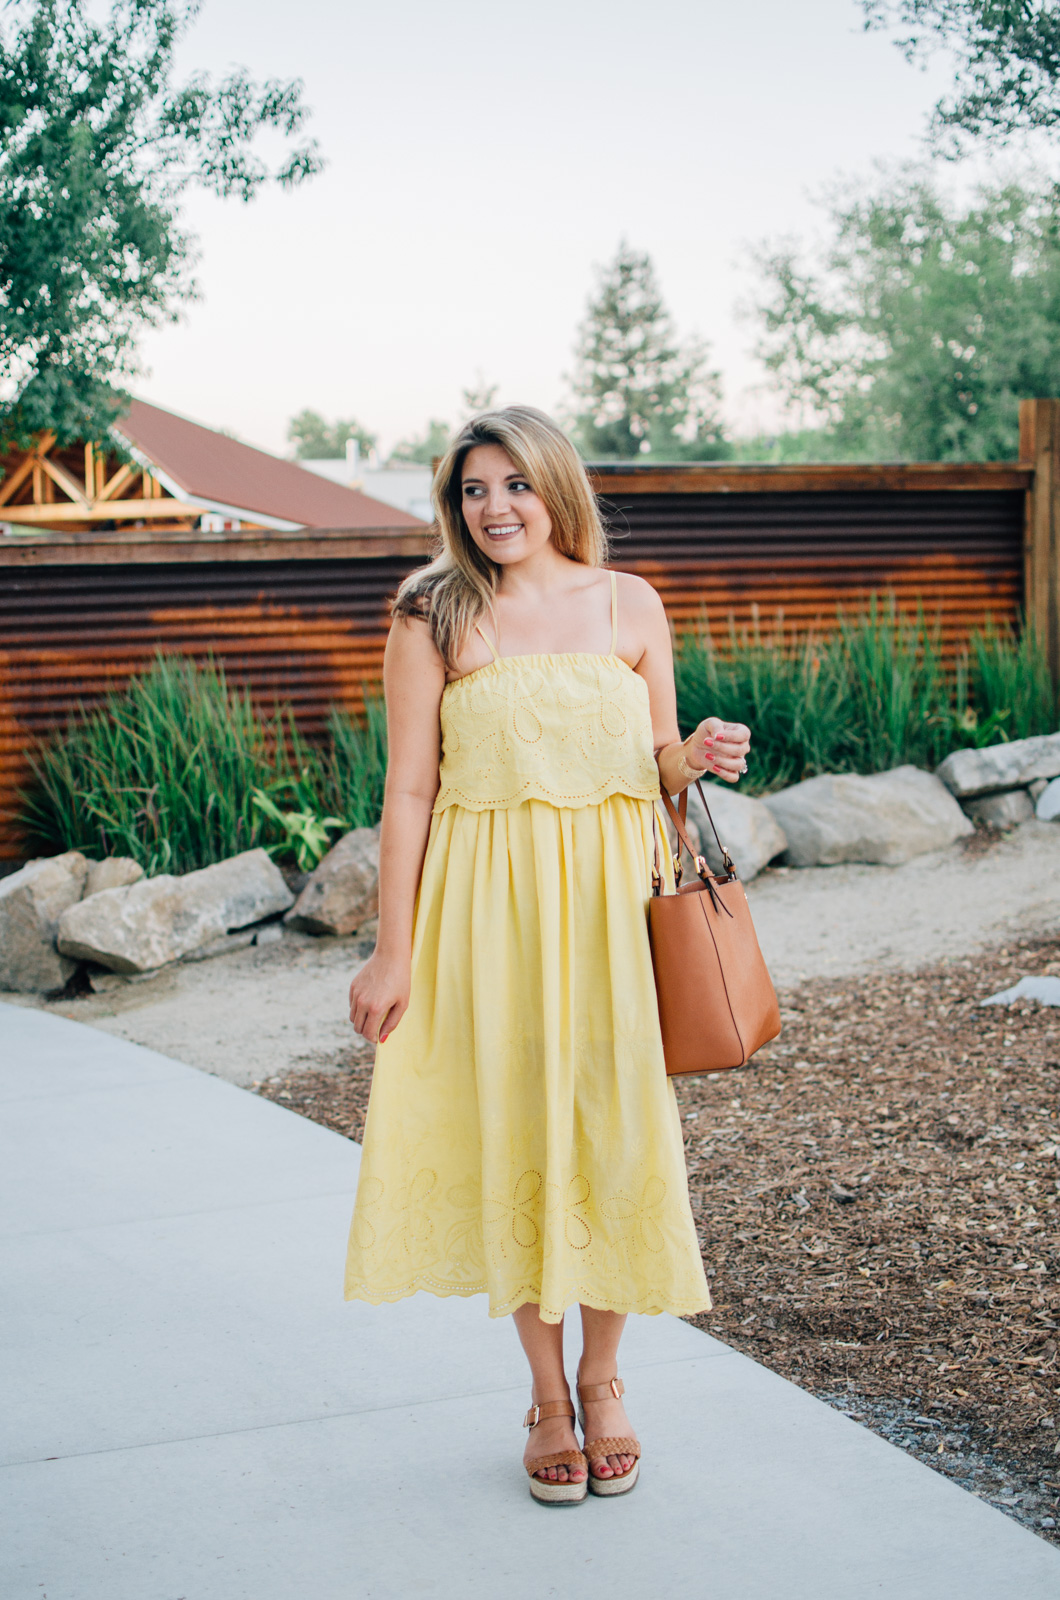 yellow midi sundress - cute summer style | More Summer outfit ideas at bylaurenm.com